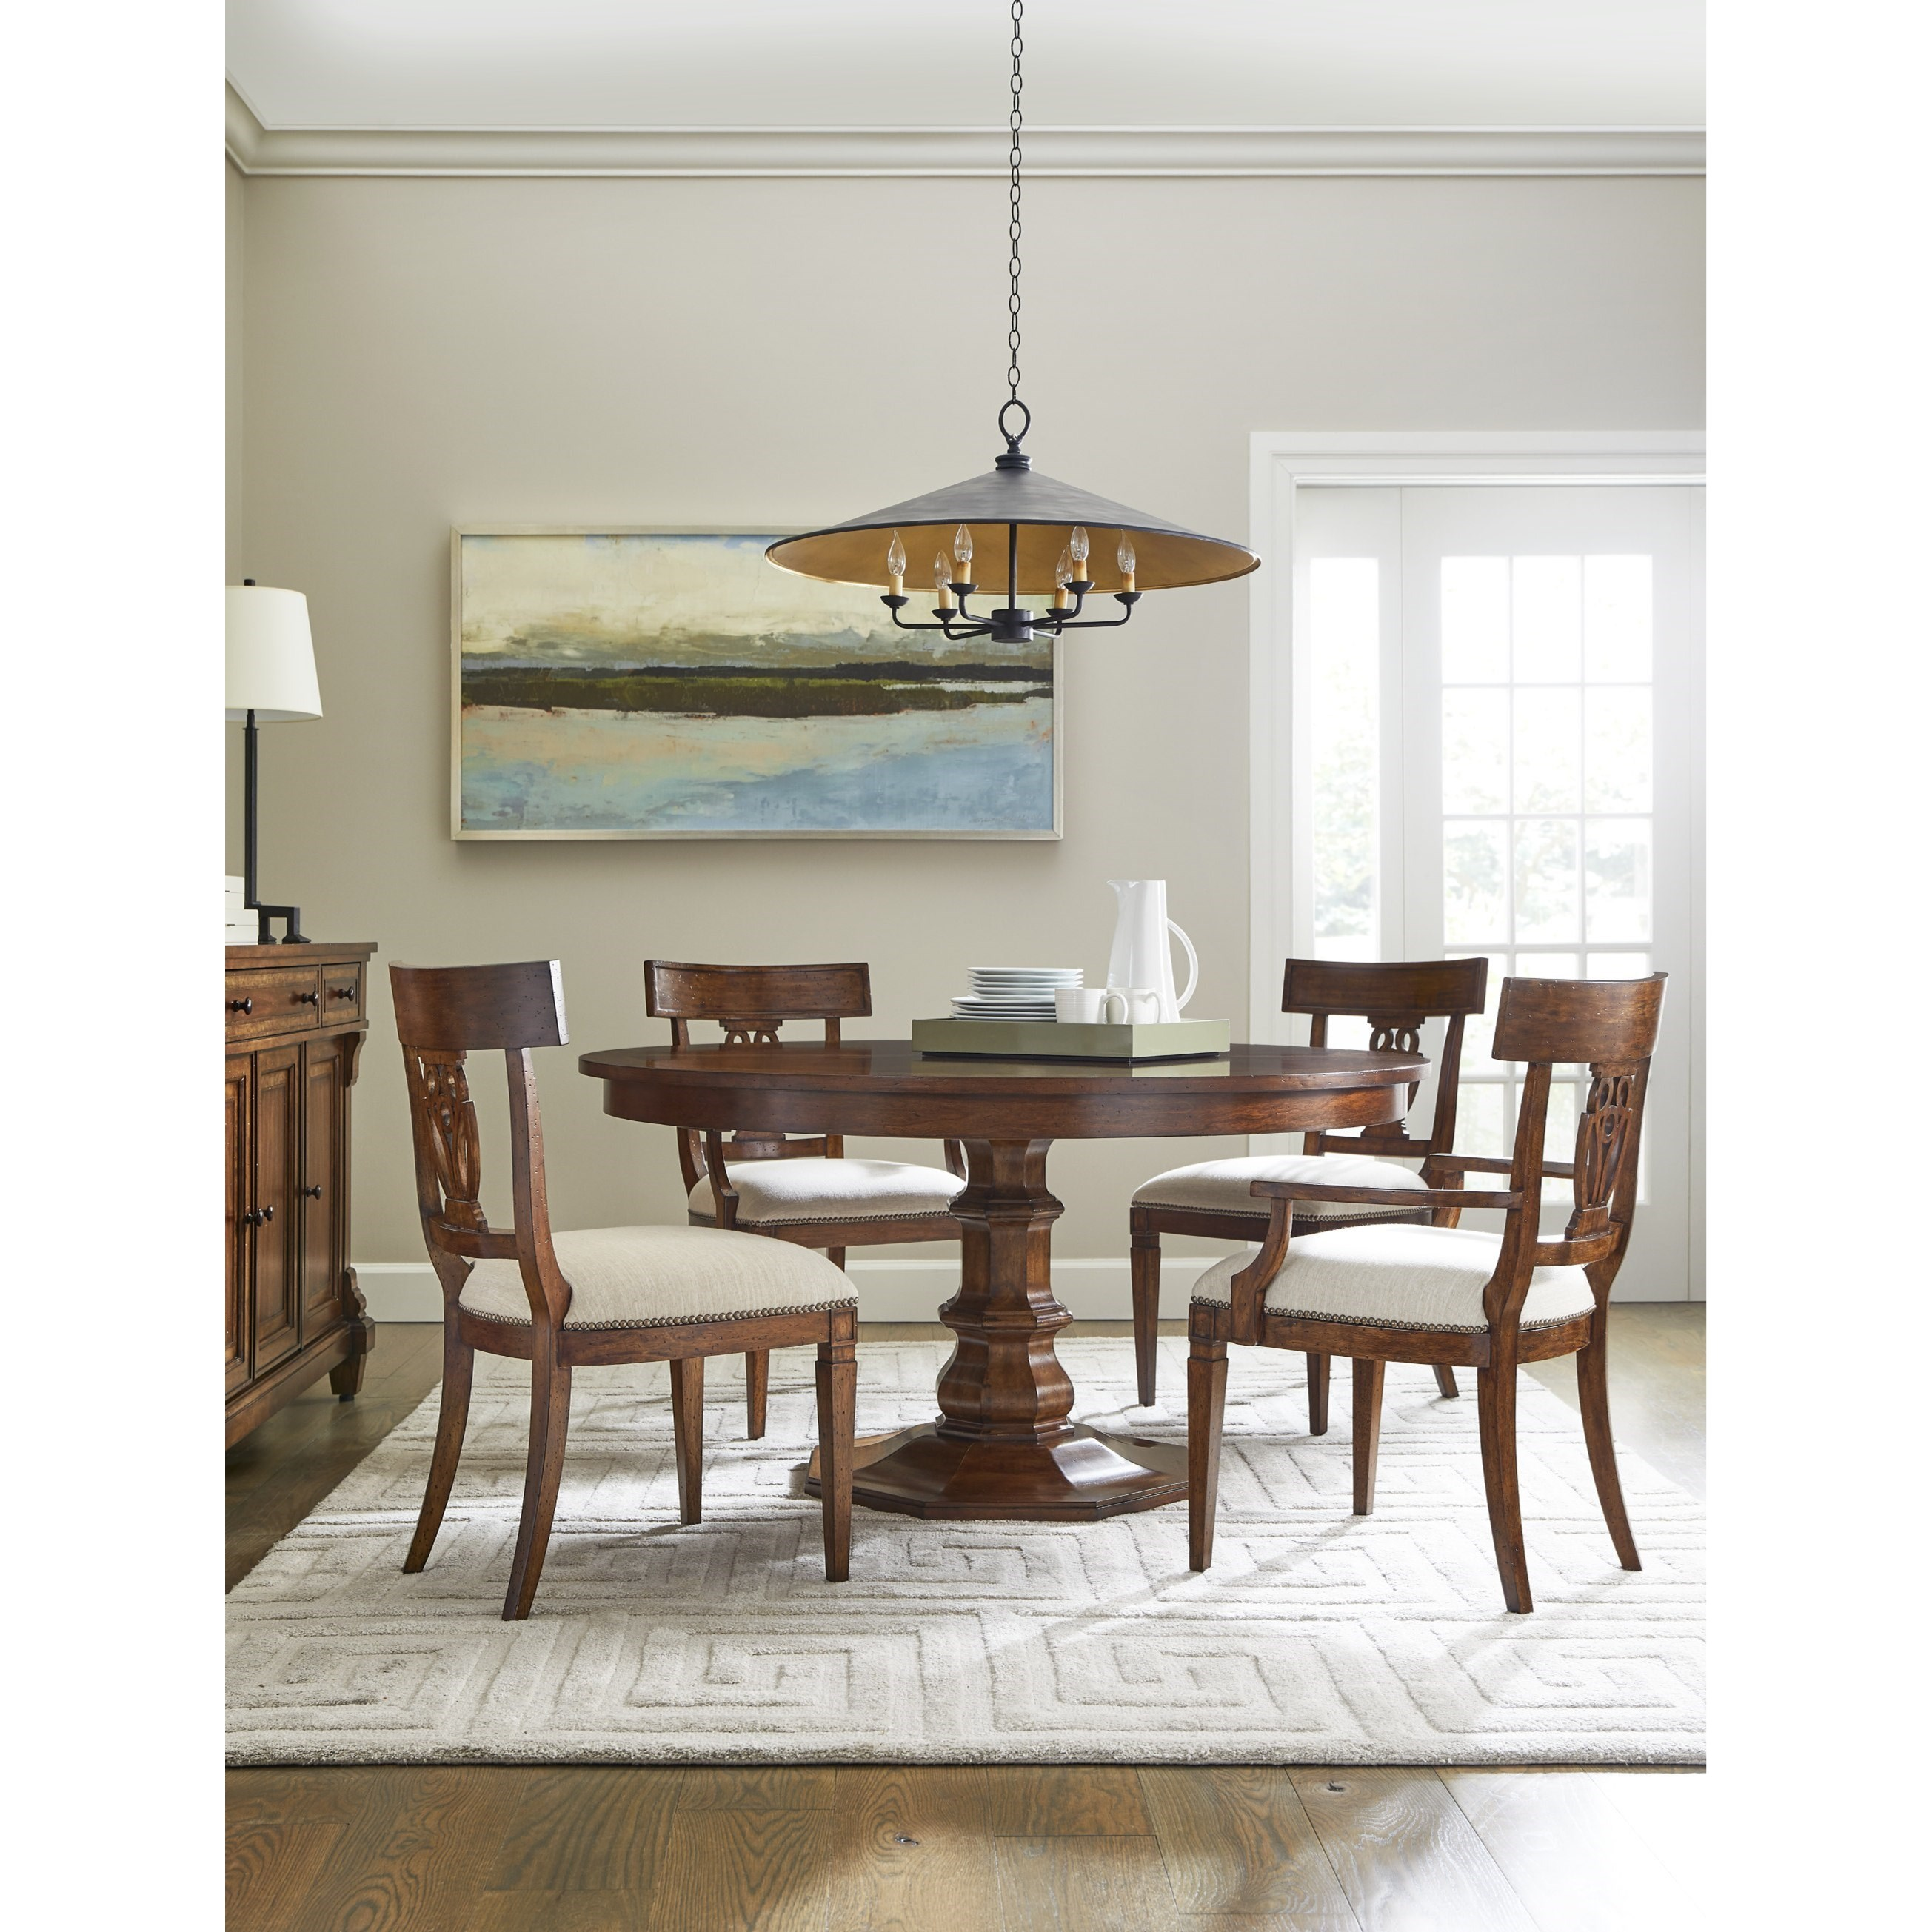 Old Town Dining Room Group by Stanley Furniture at Alison Craig Home Furnishings